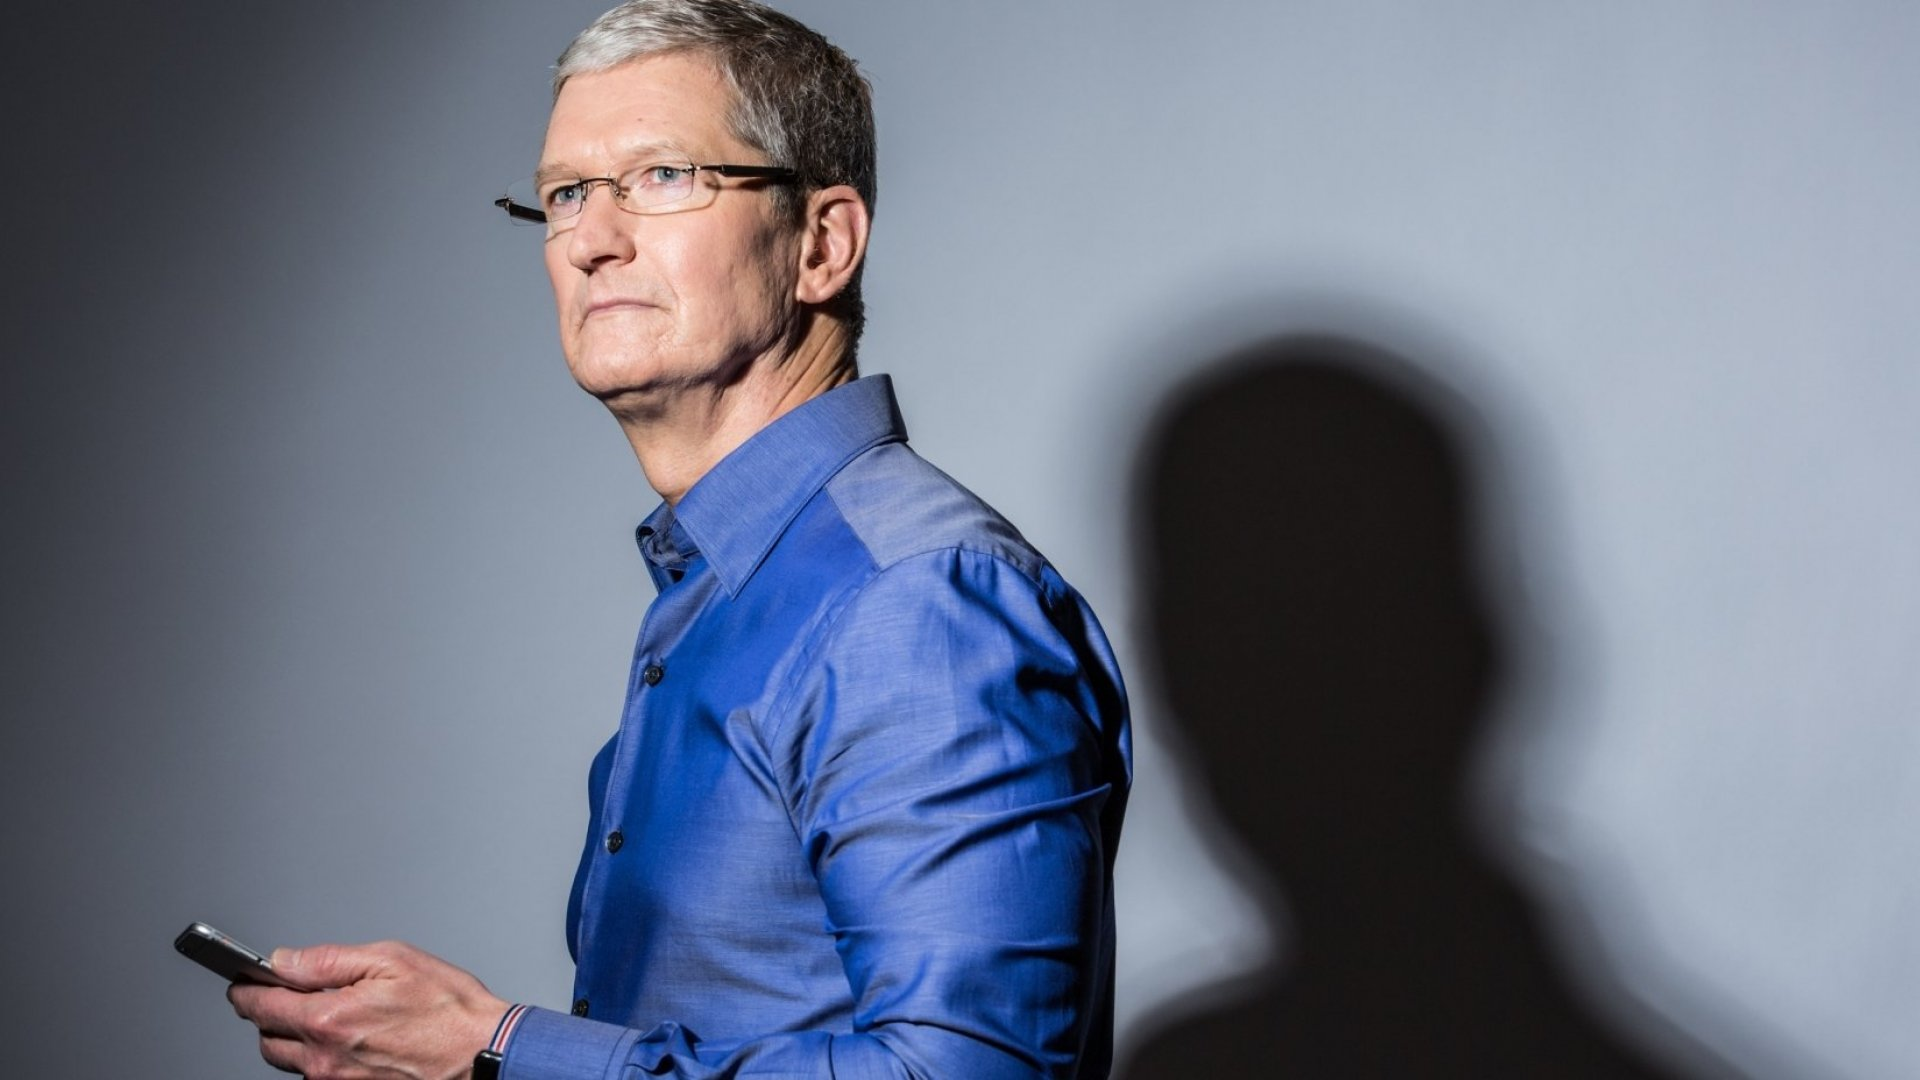 If Tim Cook Had Kids, He Wouldn't Want Them on Social Media. Here's What He'd Teach Them Instead